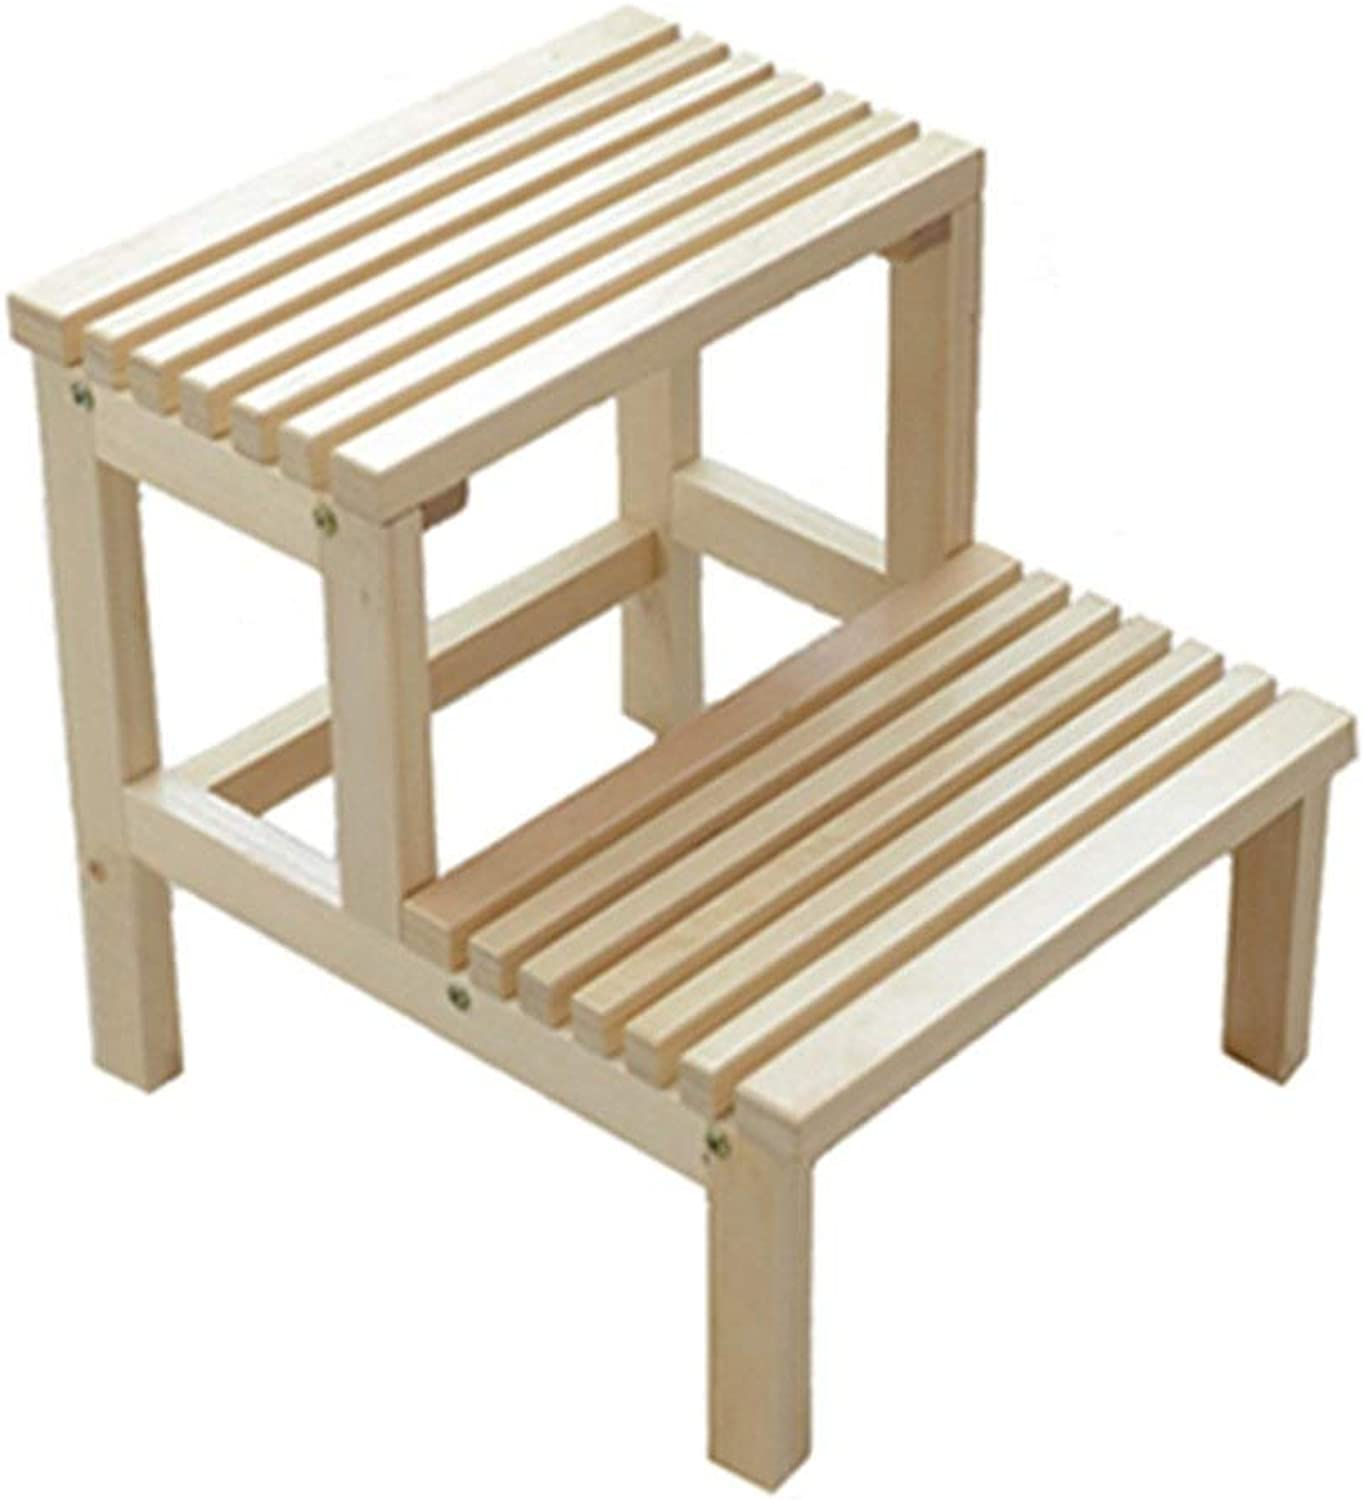 Stool Step Stool, Solid Wood Step Ladder, Multi-Function Double Step Step Ladder, Decorative Shelf